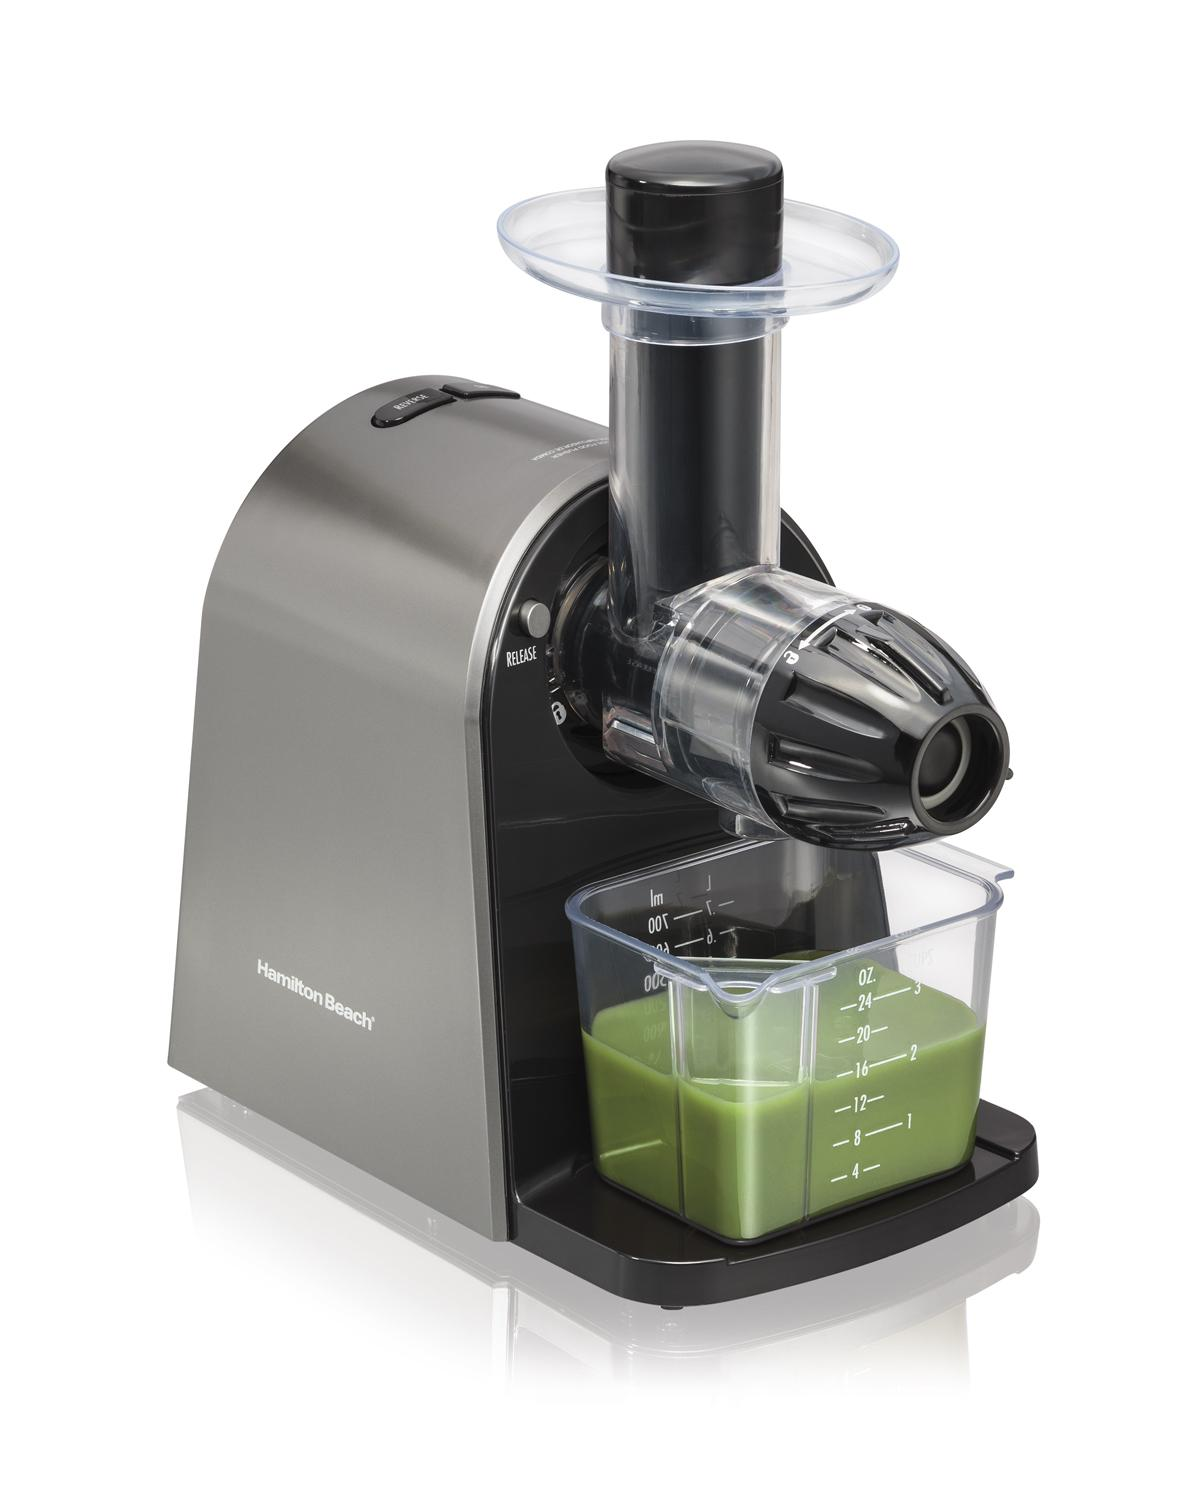 Slow Juicer Industrial : juicer breville commercial cuisinart omega extractor slow juicers electric vegetable masticating